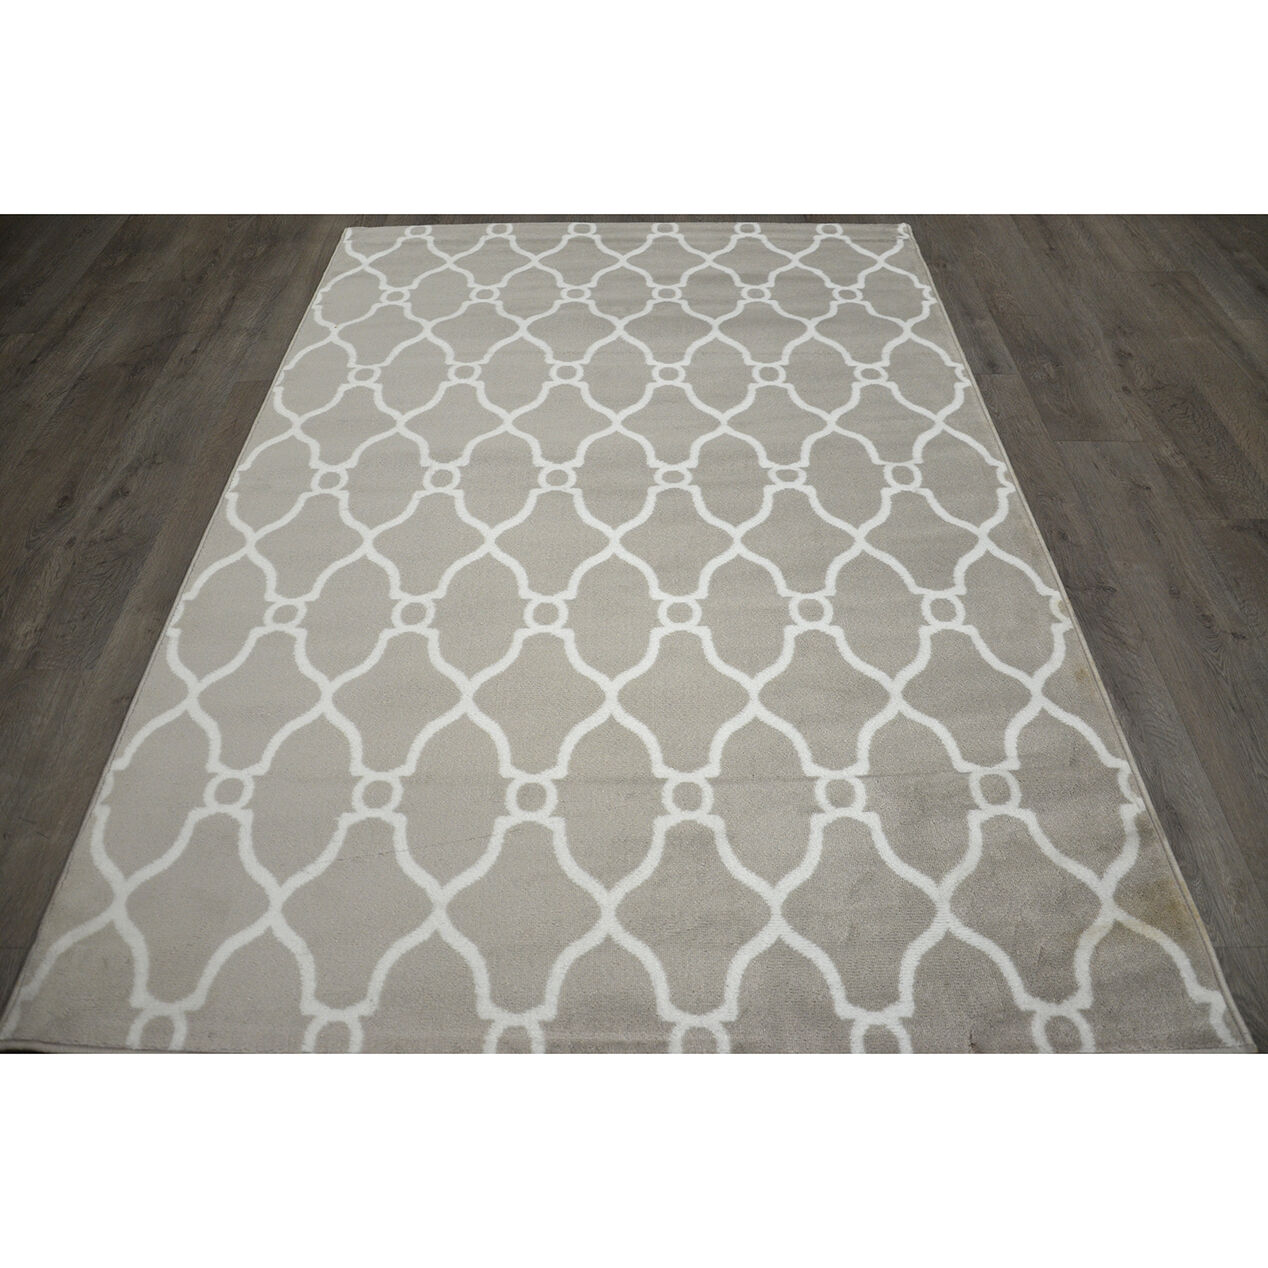 D47 Grey and White Moroccan Runner - At Home